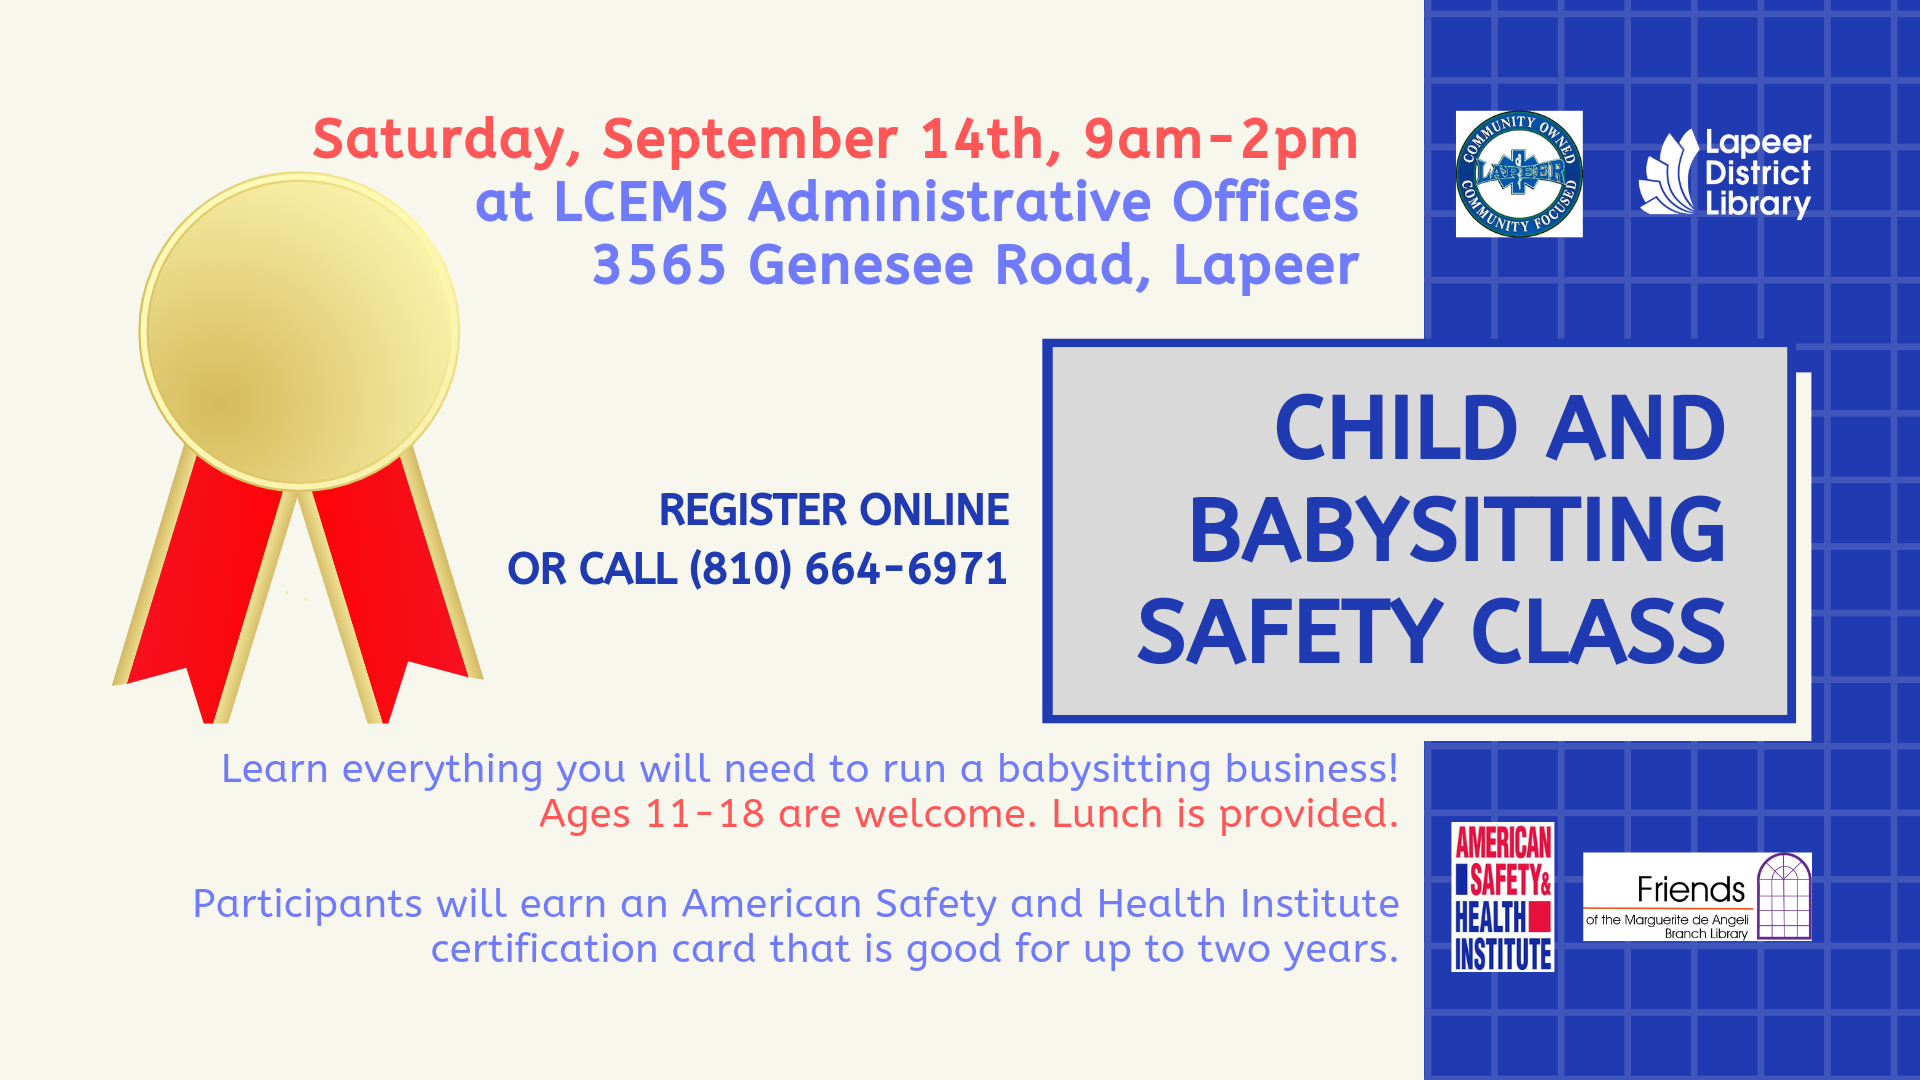 Child and Babysitting Safety class